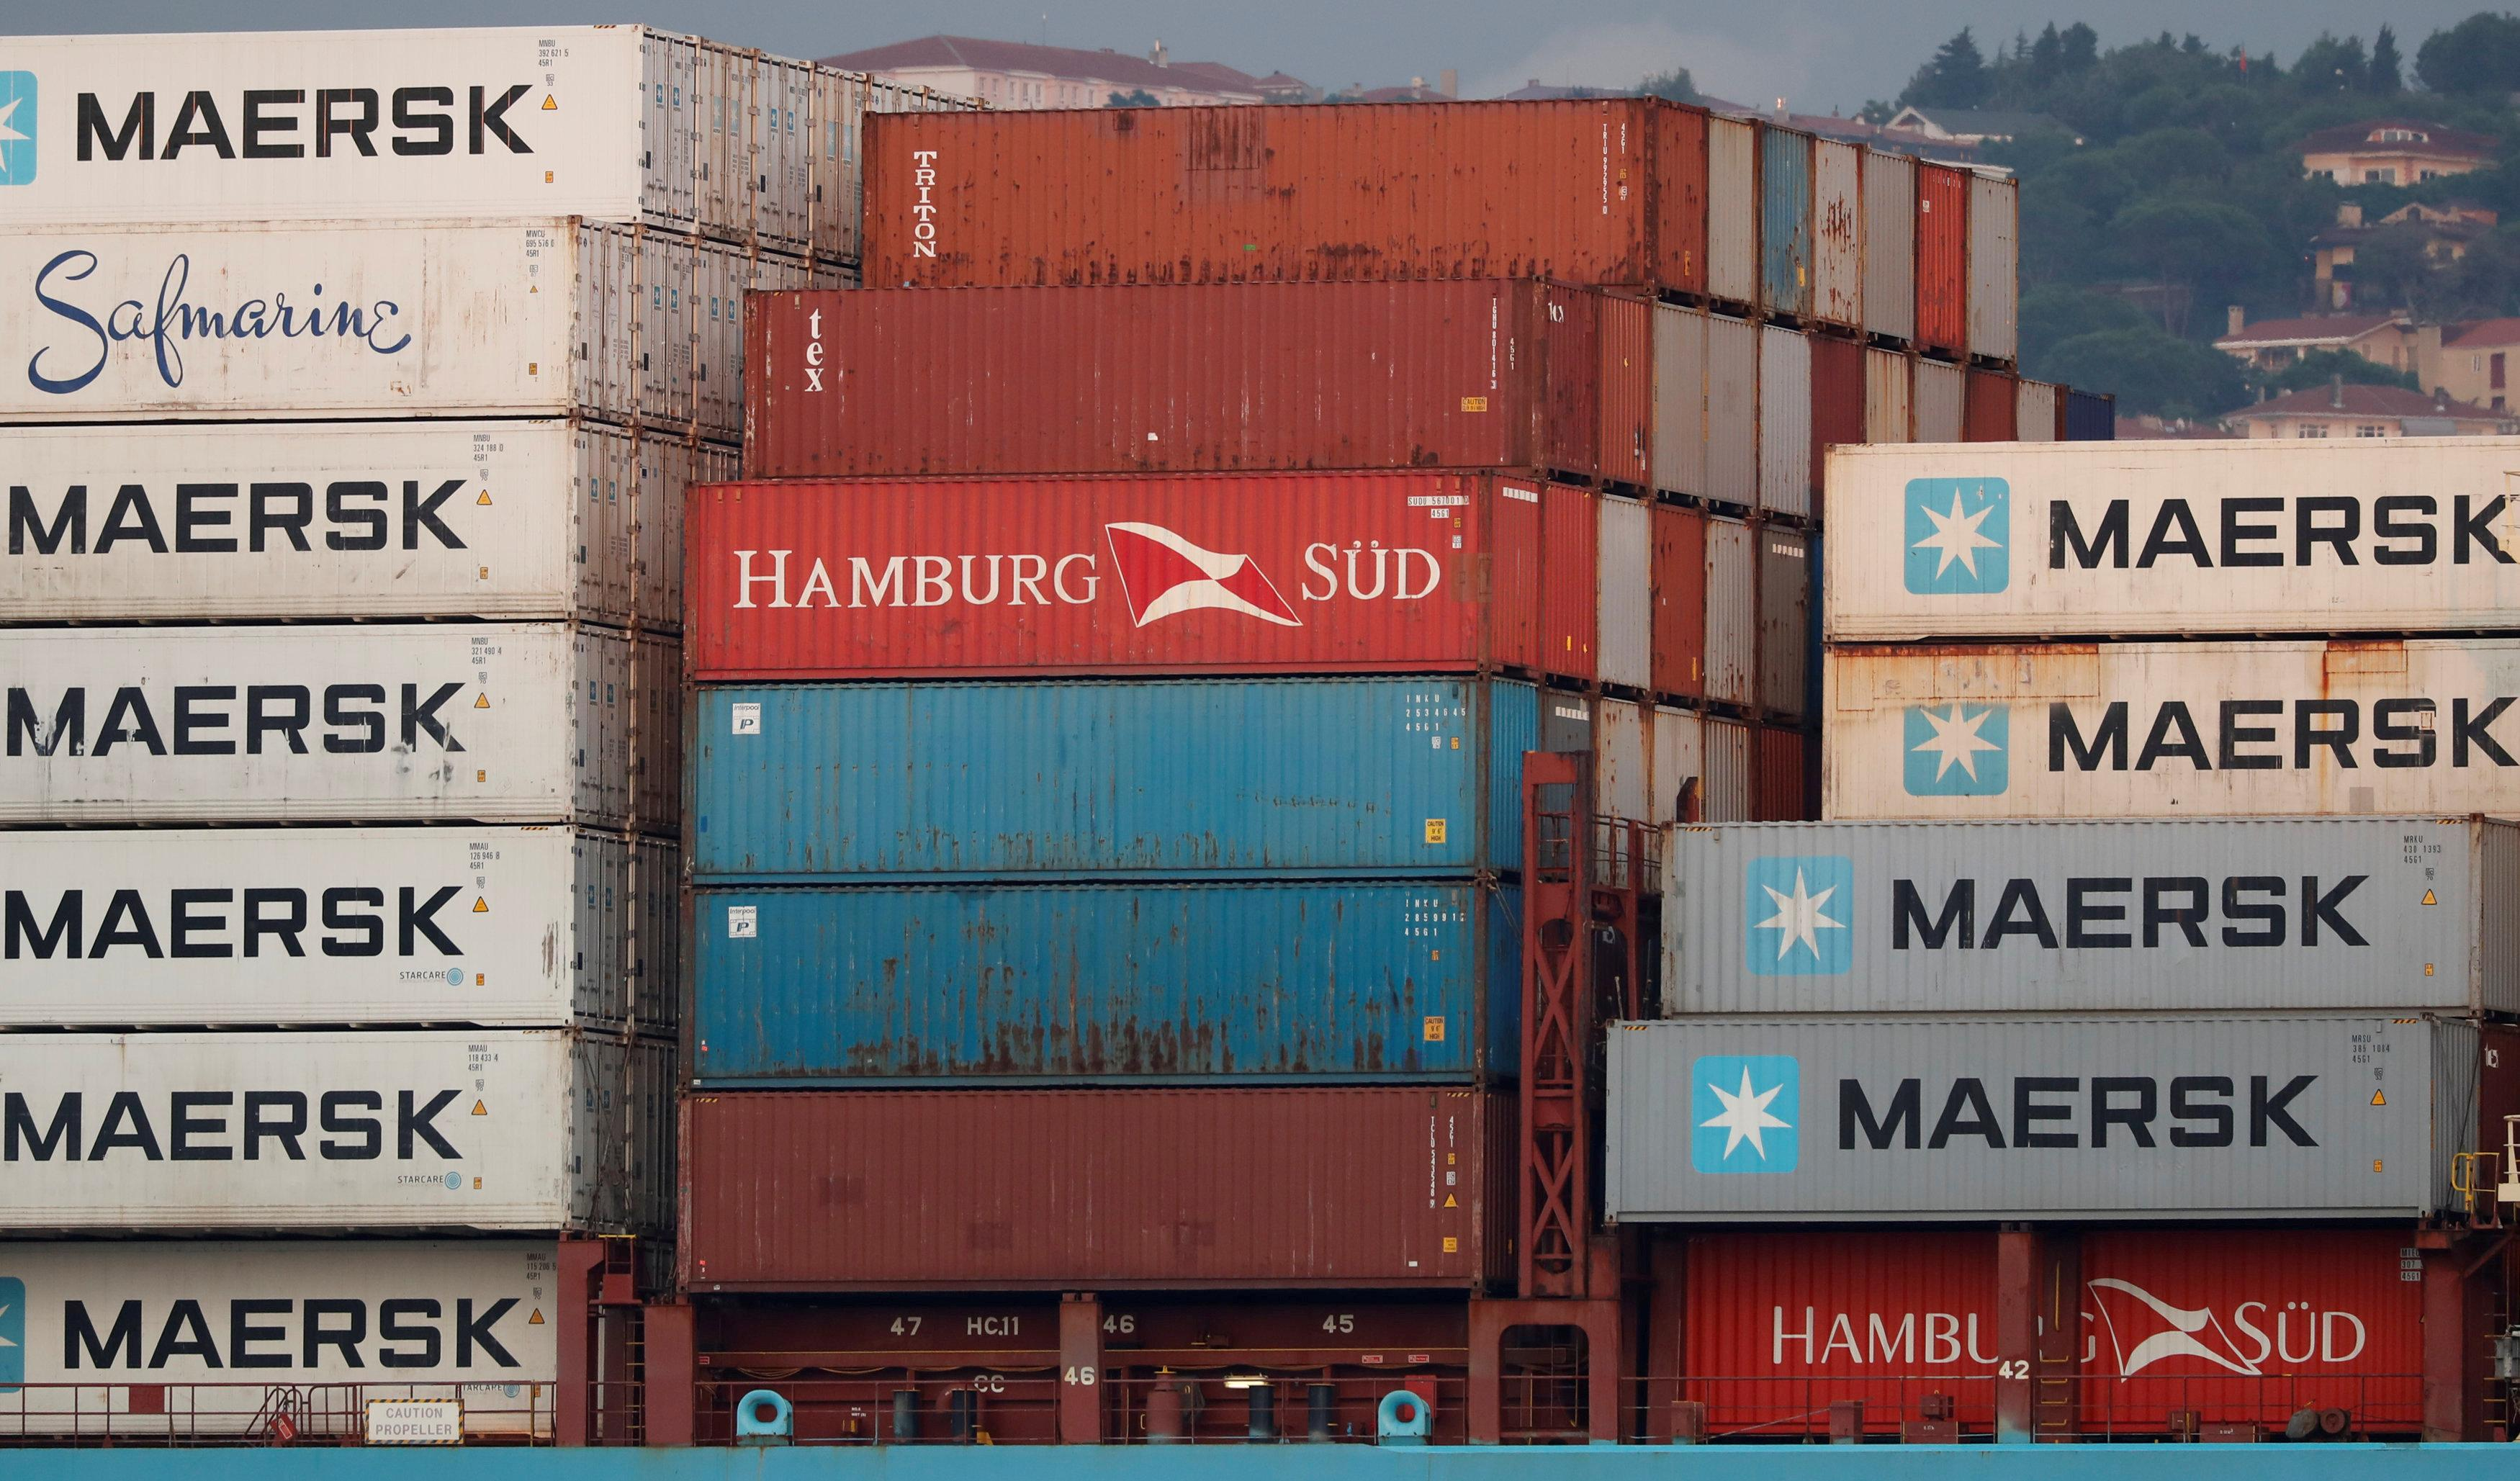 Maersk to merge Damco, Ocean Product units - Fin2me